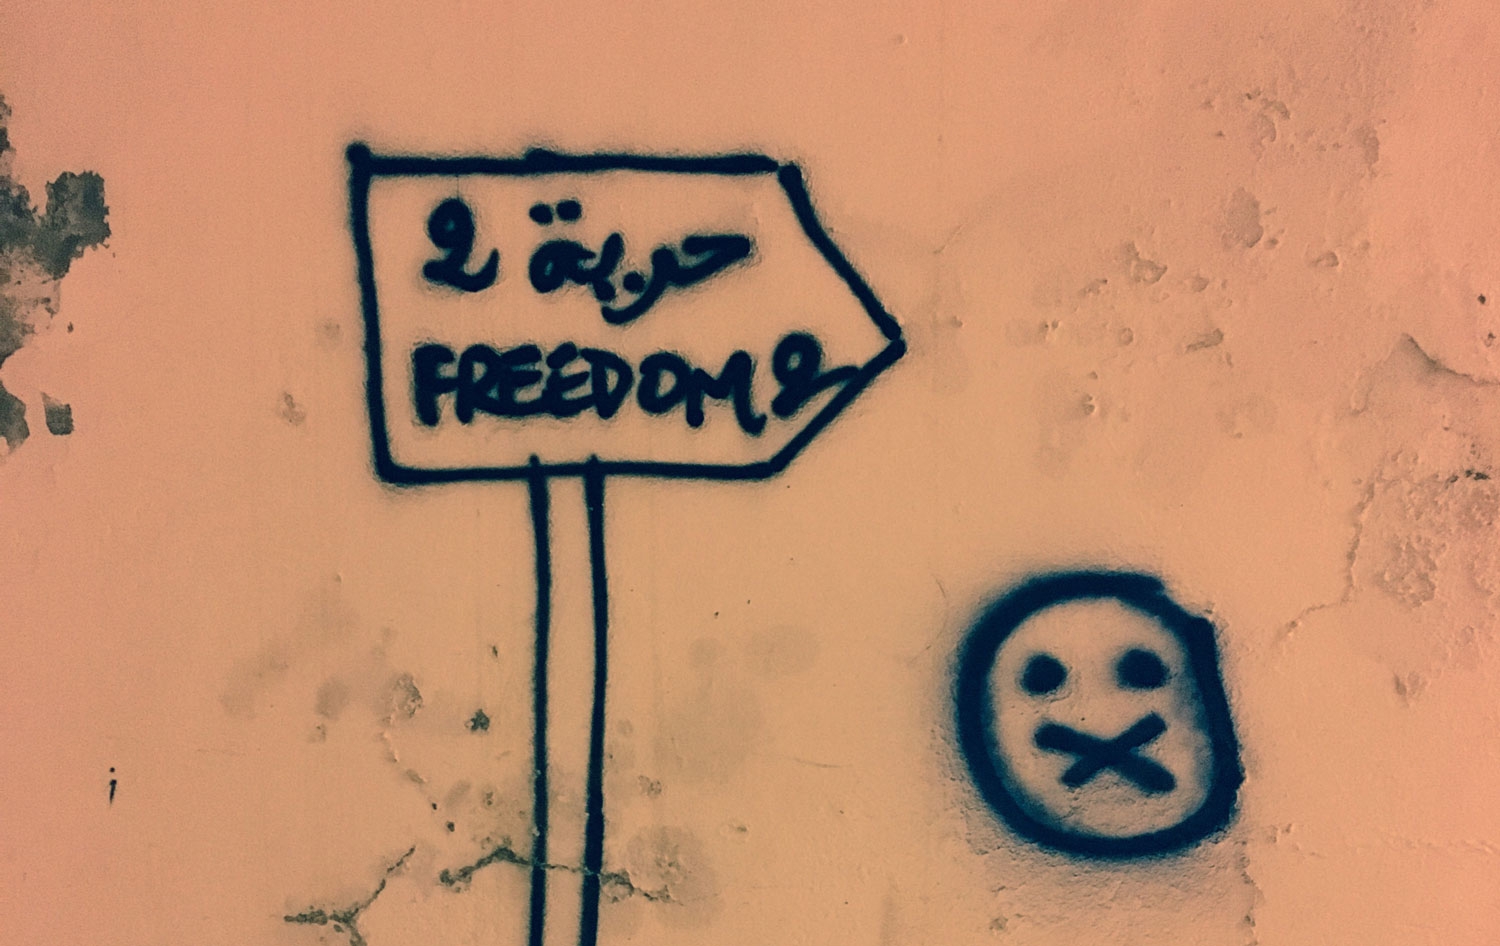 Graffiti in the Medina of Tunis says 'Freedom 2km away'. Following the uprisings, many Tunisians feel that freedom is still a long way off. Photo: Kloé Tricot O'Farrell, Saferworld